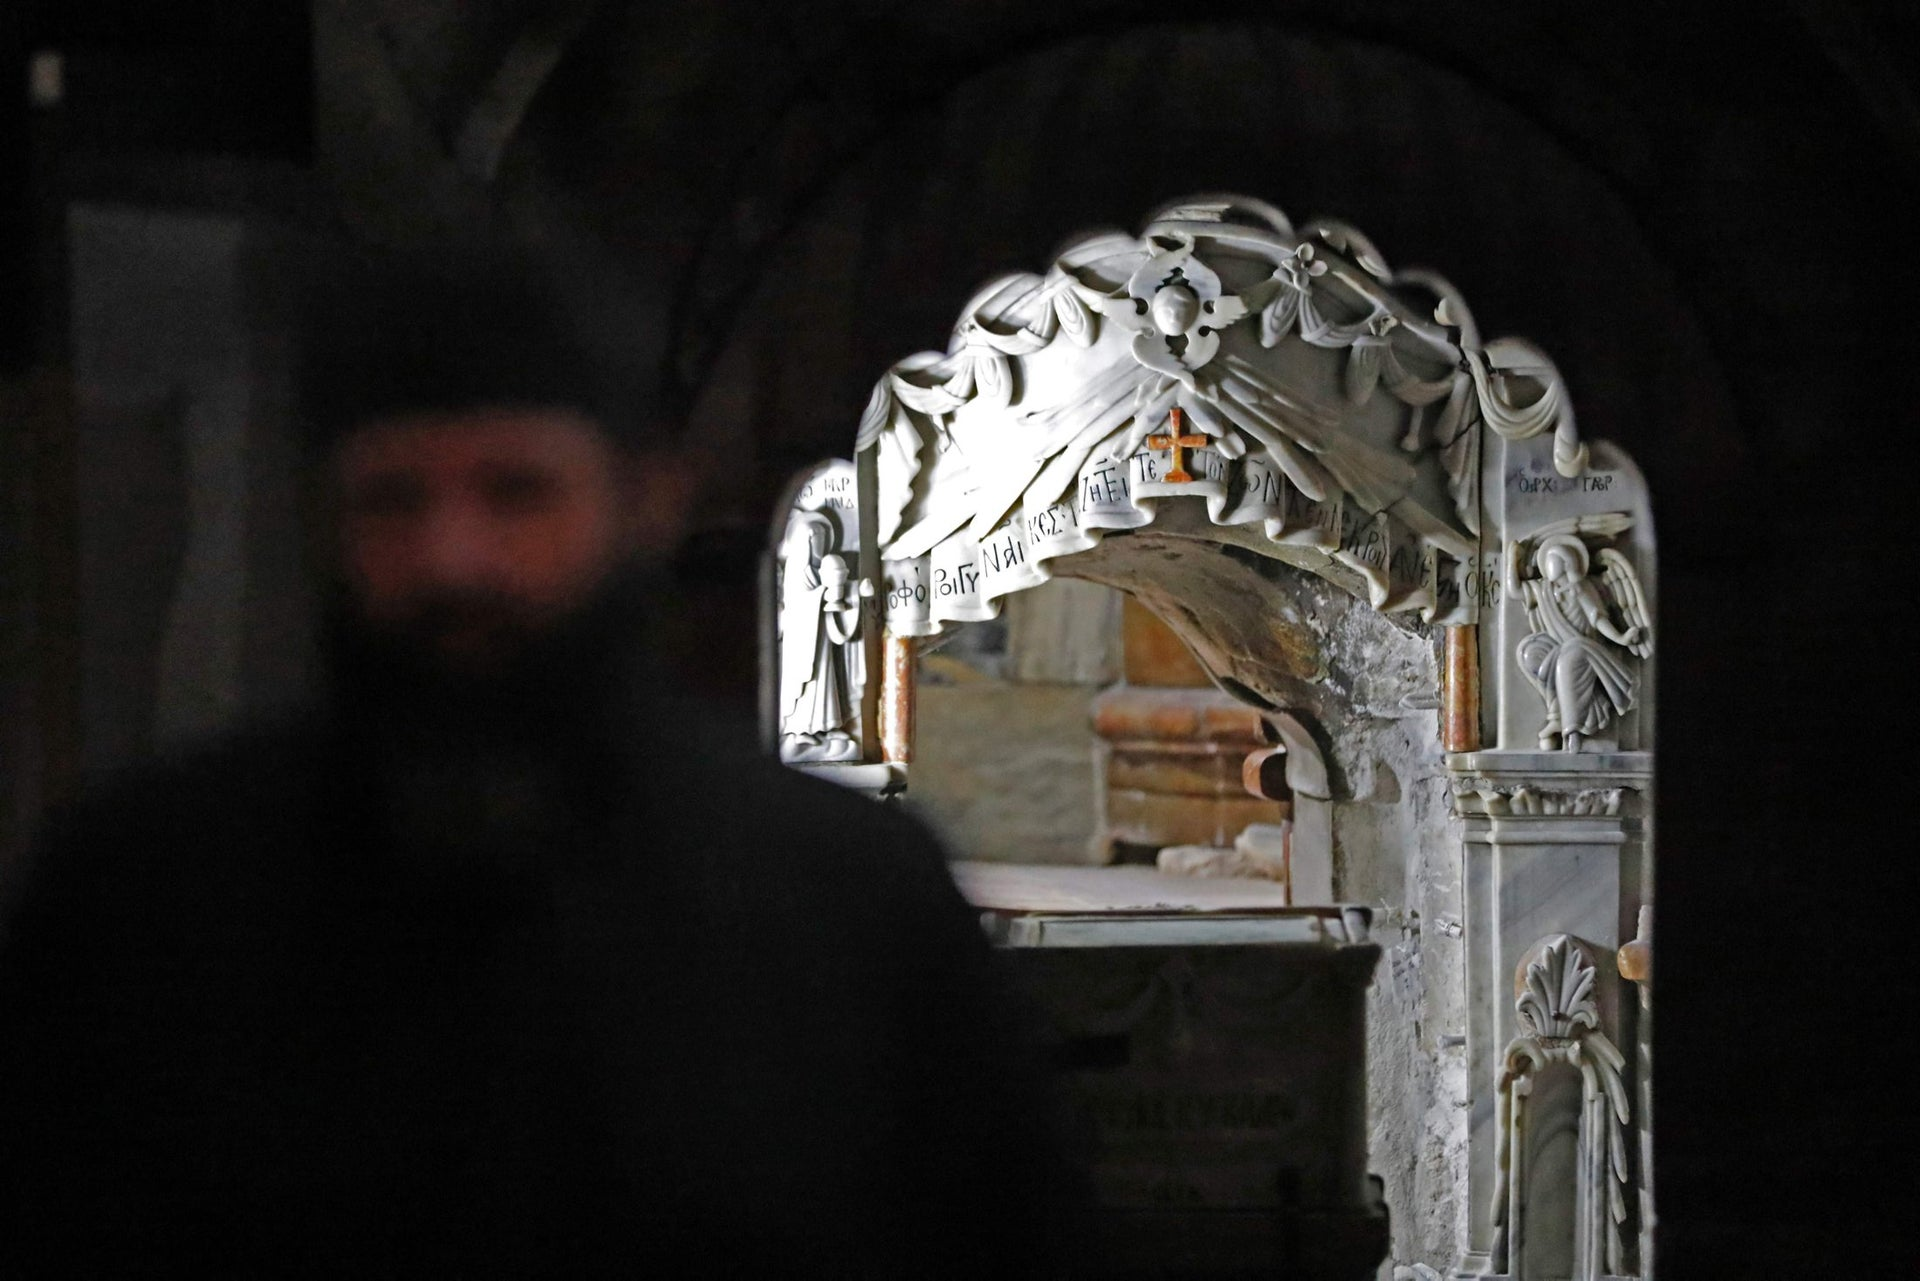 Greek Orthodox and Franciscan priests stand behind a panel placed next to the Tomb of Jesus at the Church of the Holy Sepulchre in Jerusalem's Old City on October 28, 2016.